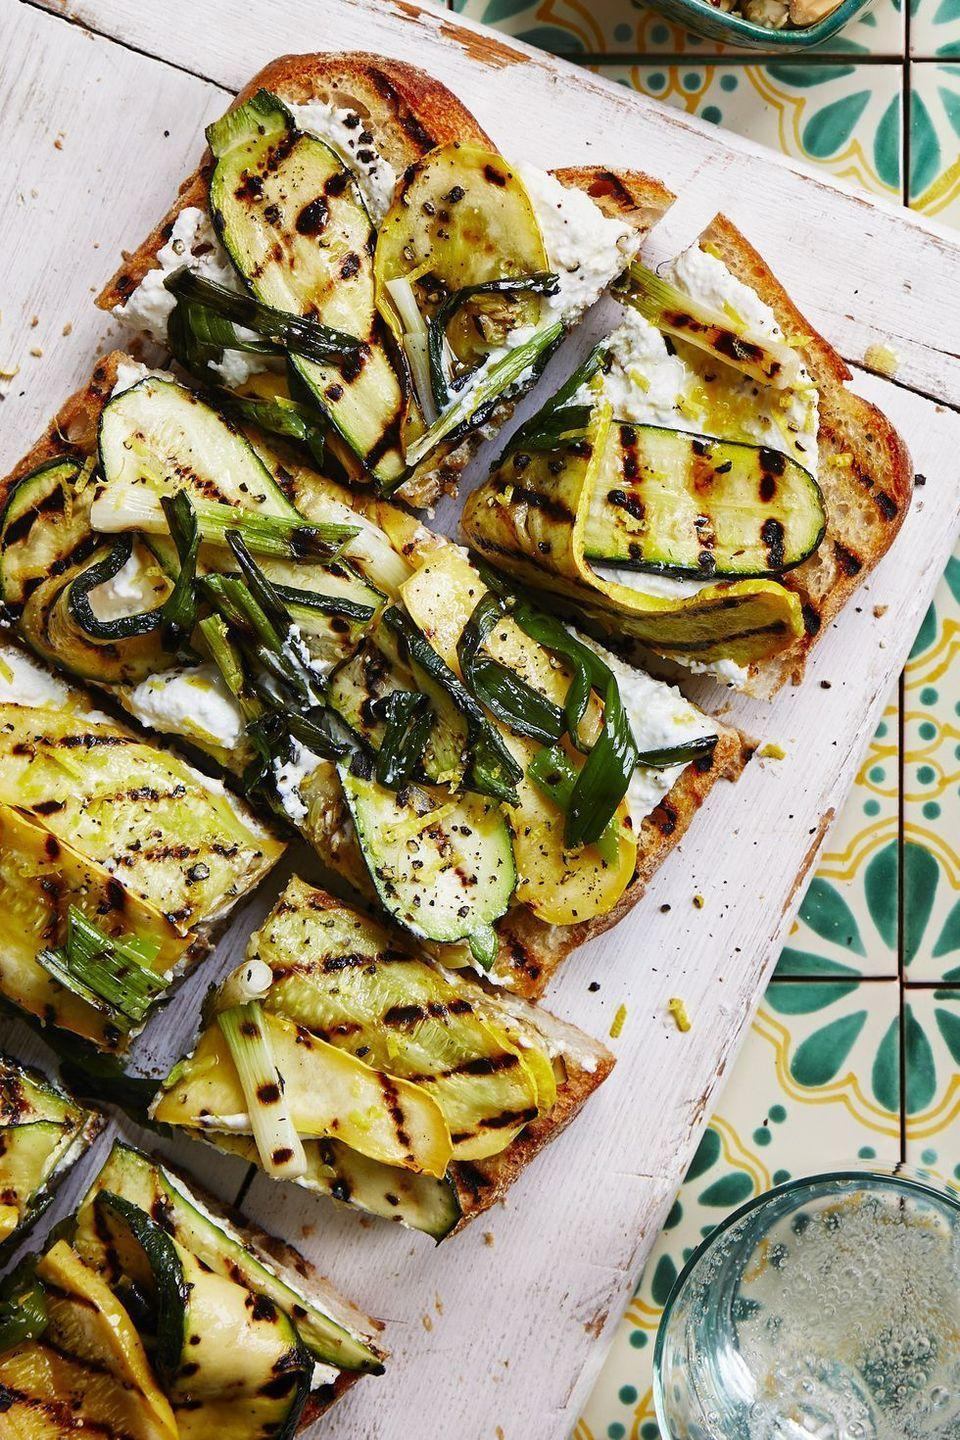 """<p>Adding ricotta and grilled veggies brings this classic dish up from an appetizer to a main course.</p><p><em><a href=""""https://www.womansday.com/food-recipes/food-drinks/a22469348/grilled-squash-garlic-bread-recipe/"""" rel=""""nofollow noopener"""" target=""""_blank"""" data-ylk=""""slk:Get the Grilled Squash Garlic Bread recipe."""" class=""""link rapid-noclick-resp"""">Get the Grilled Squash Garlic Bread recipe.</a></em></p>"""